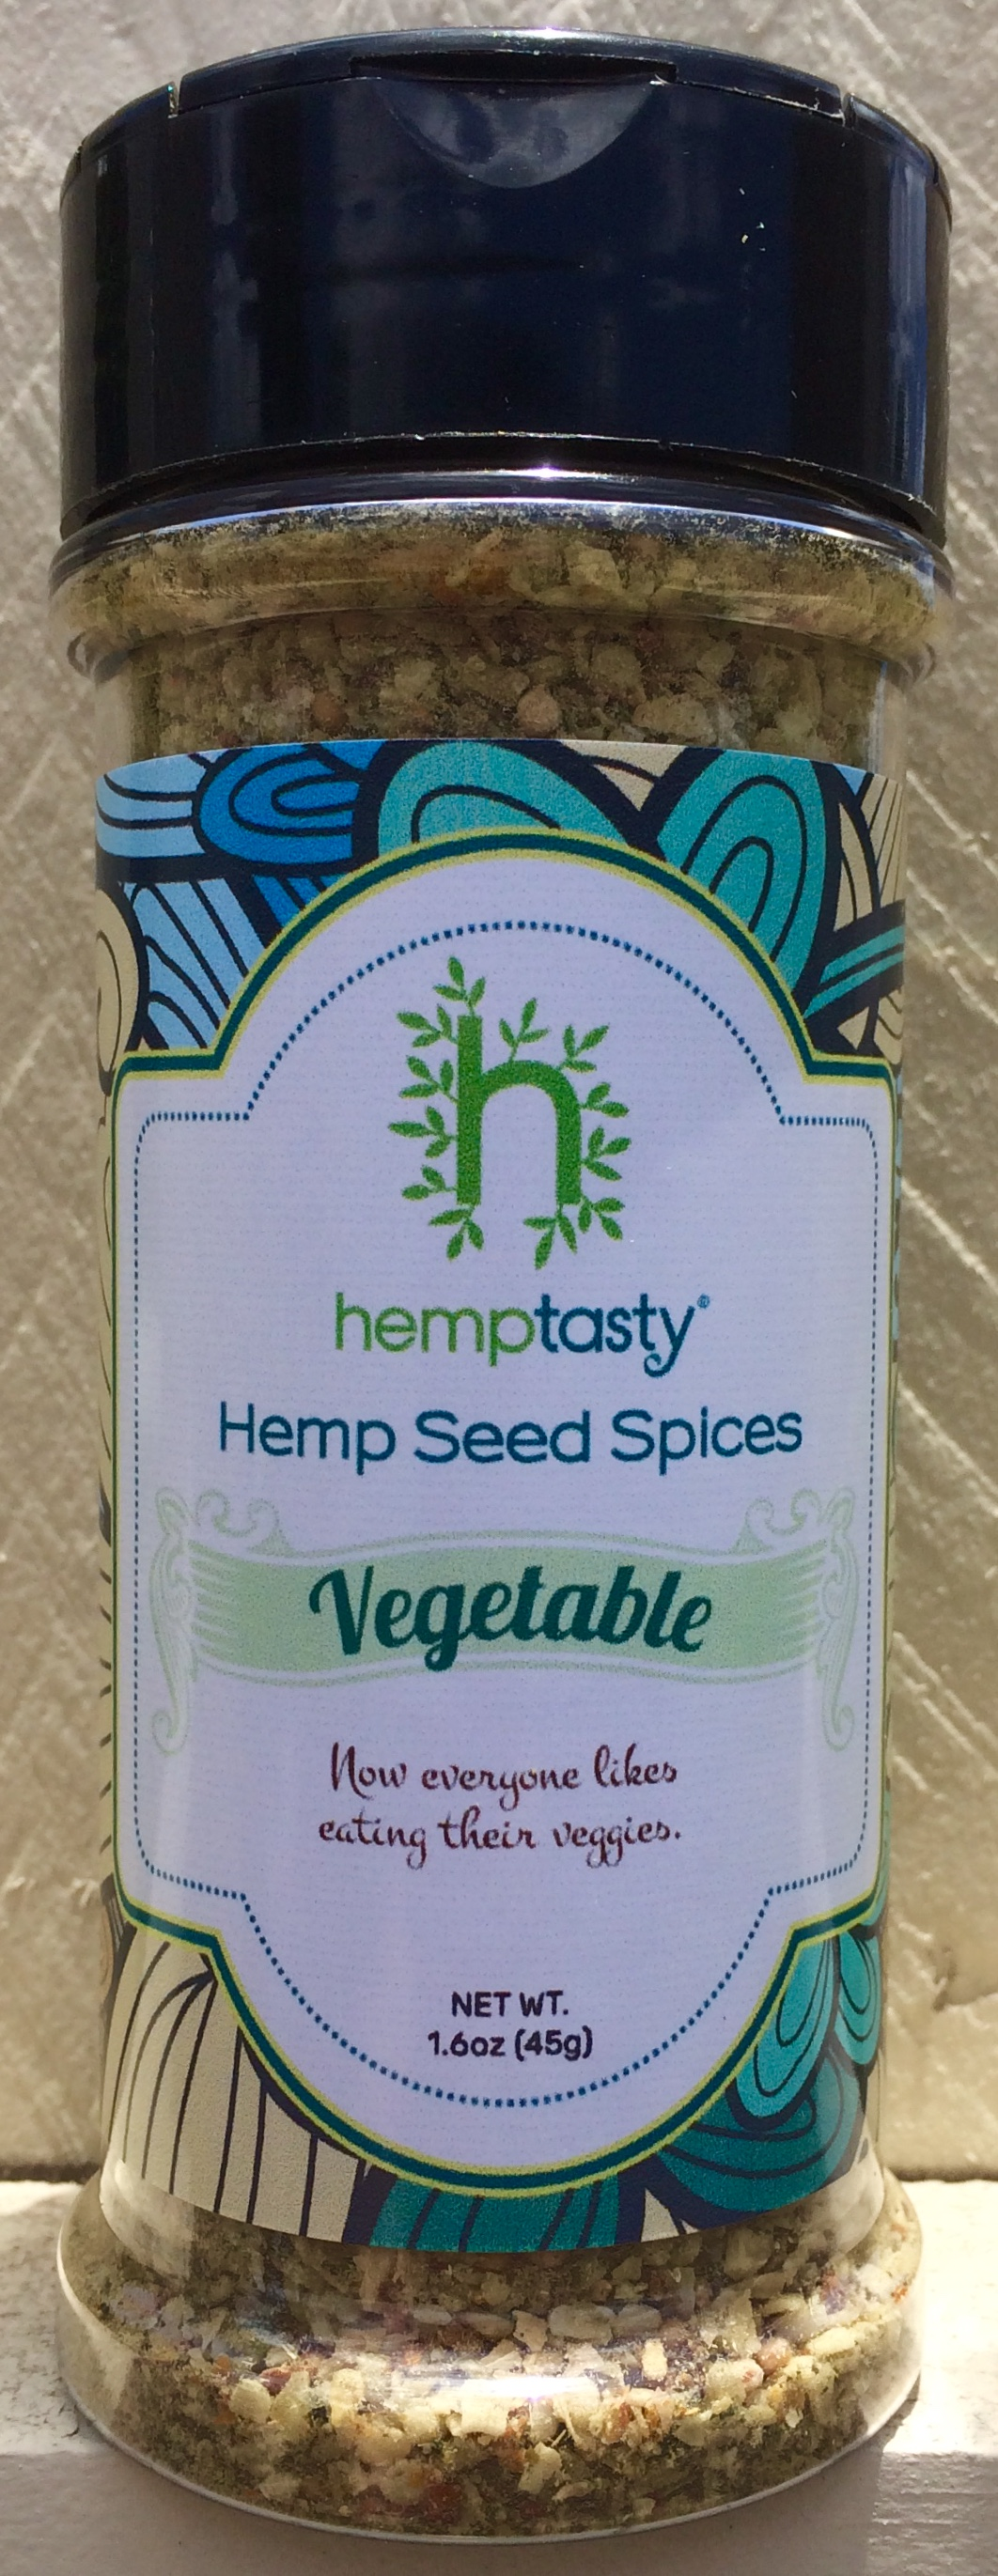 Hemp Tasty Hemp Heart Seed Vegetable Seasoning Blend